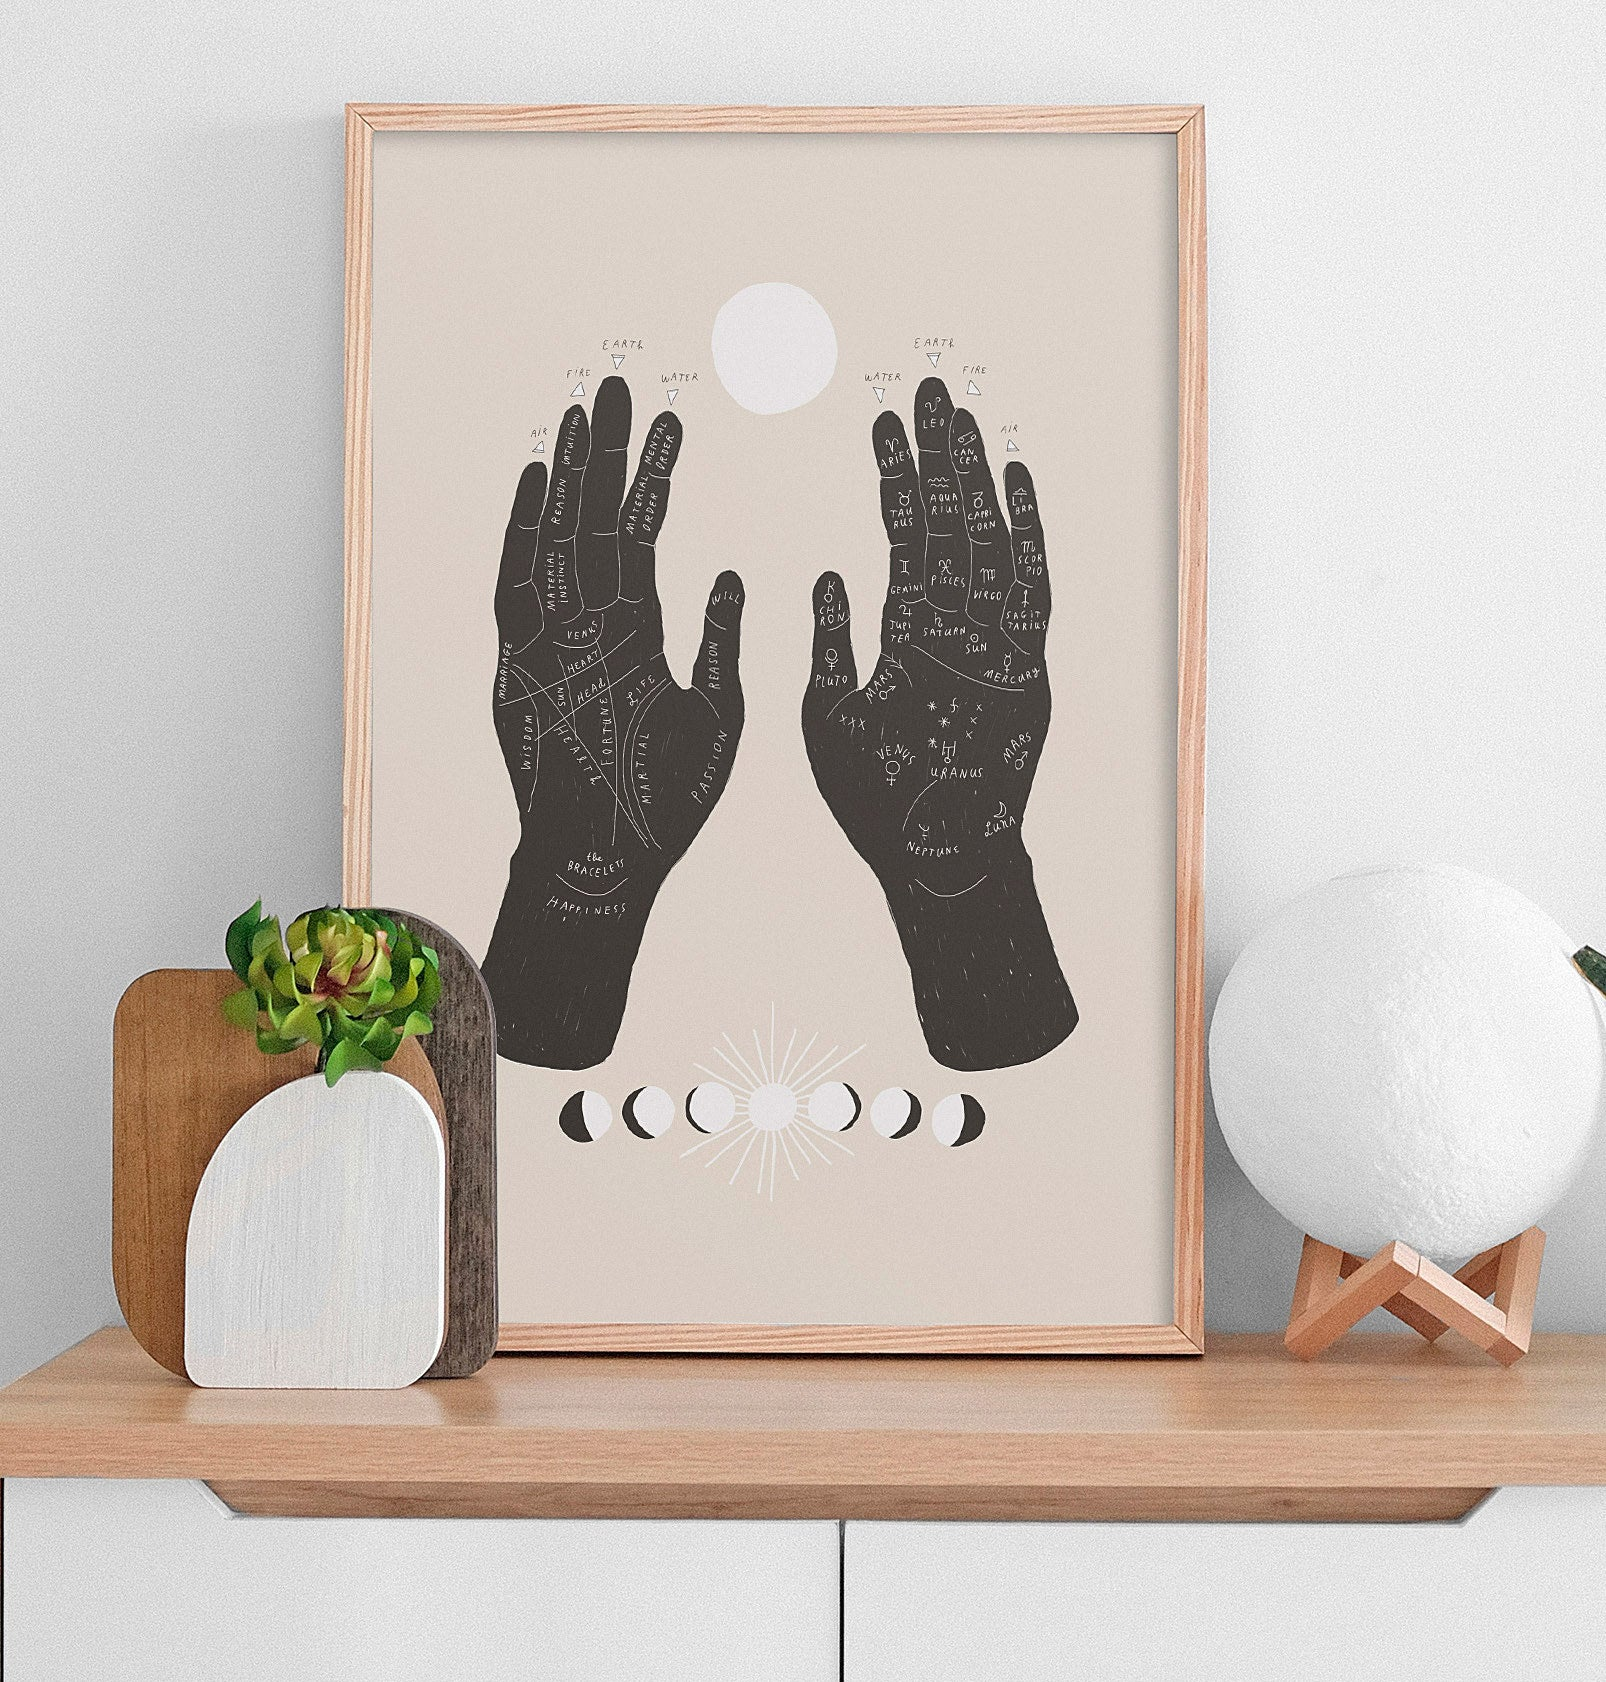 A poster with hands and moons on it